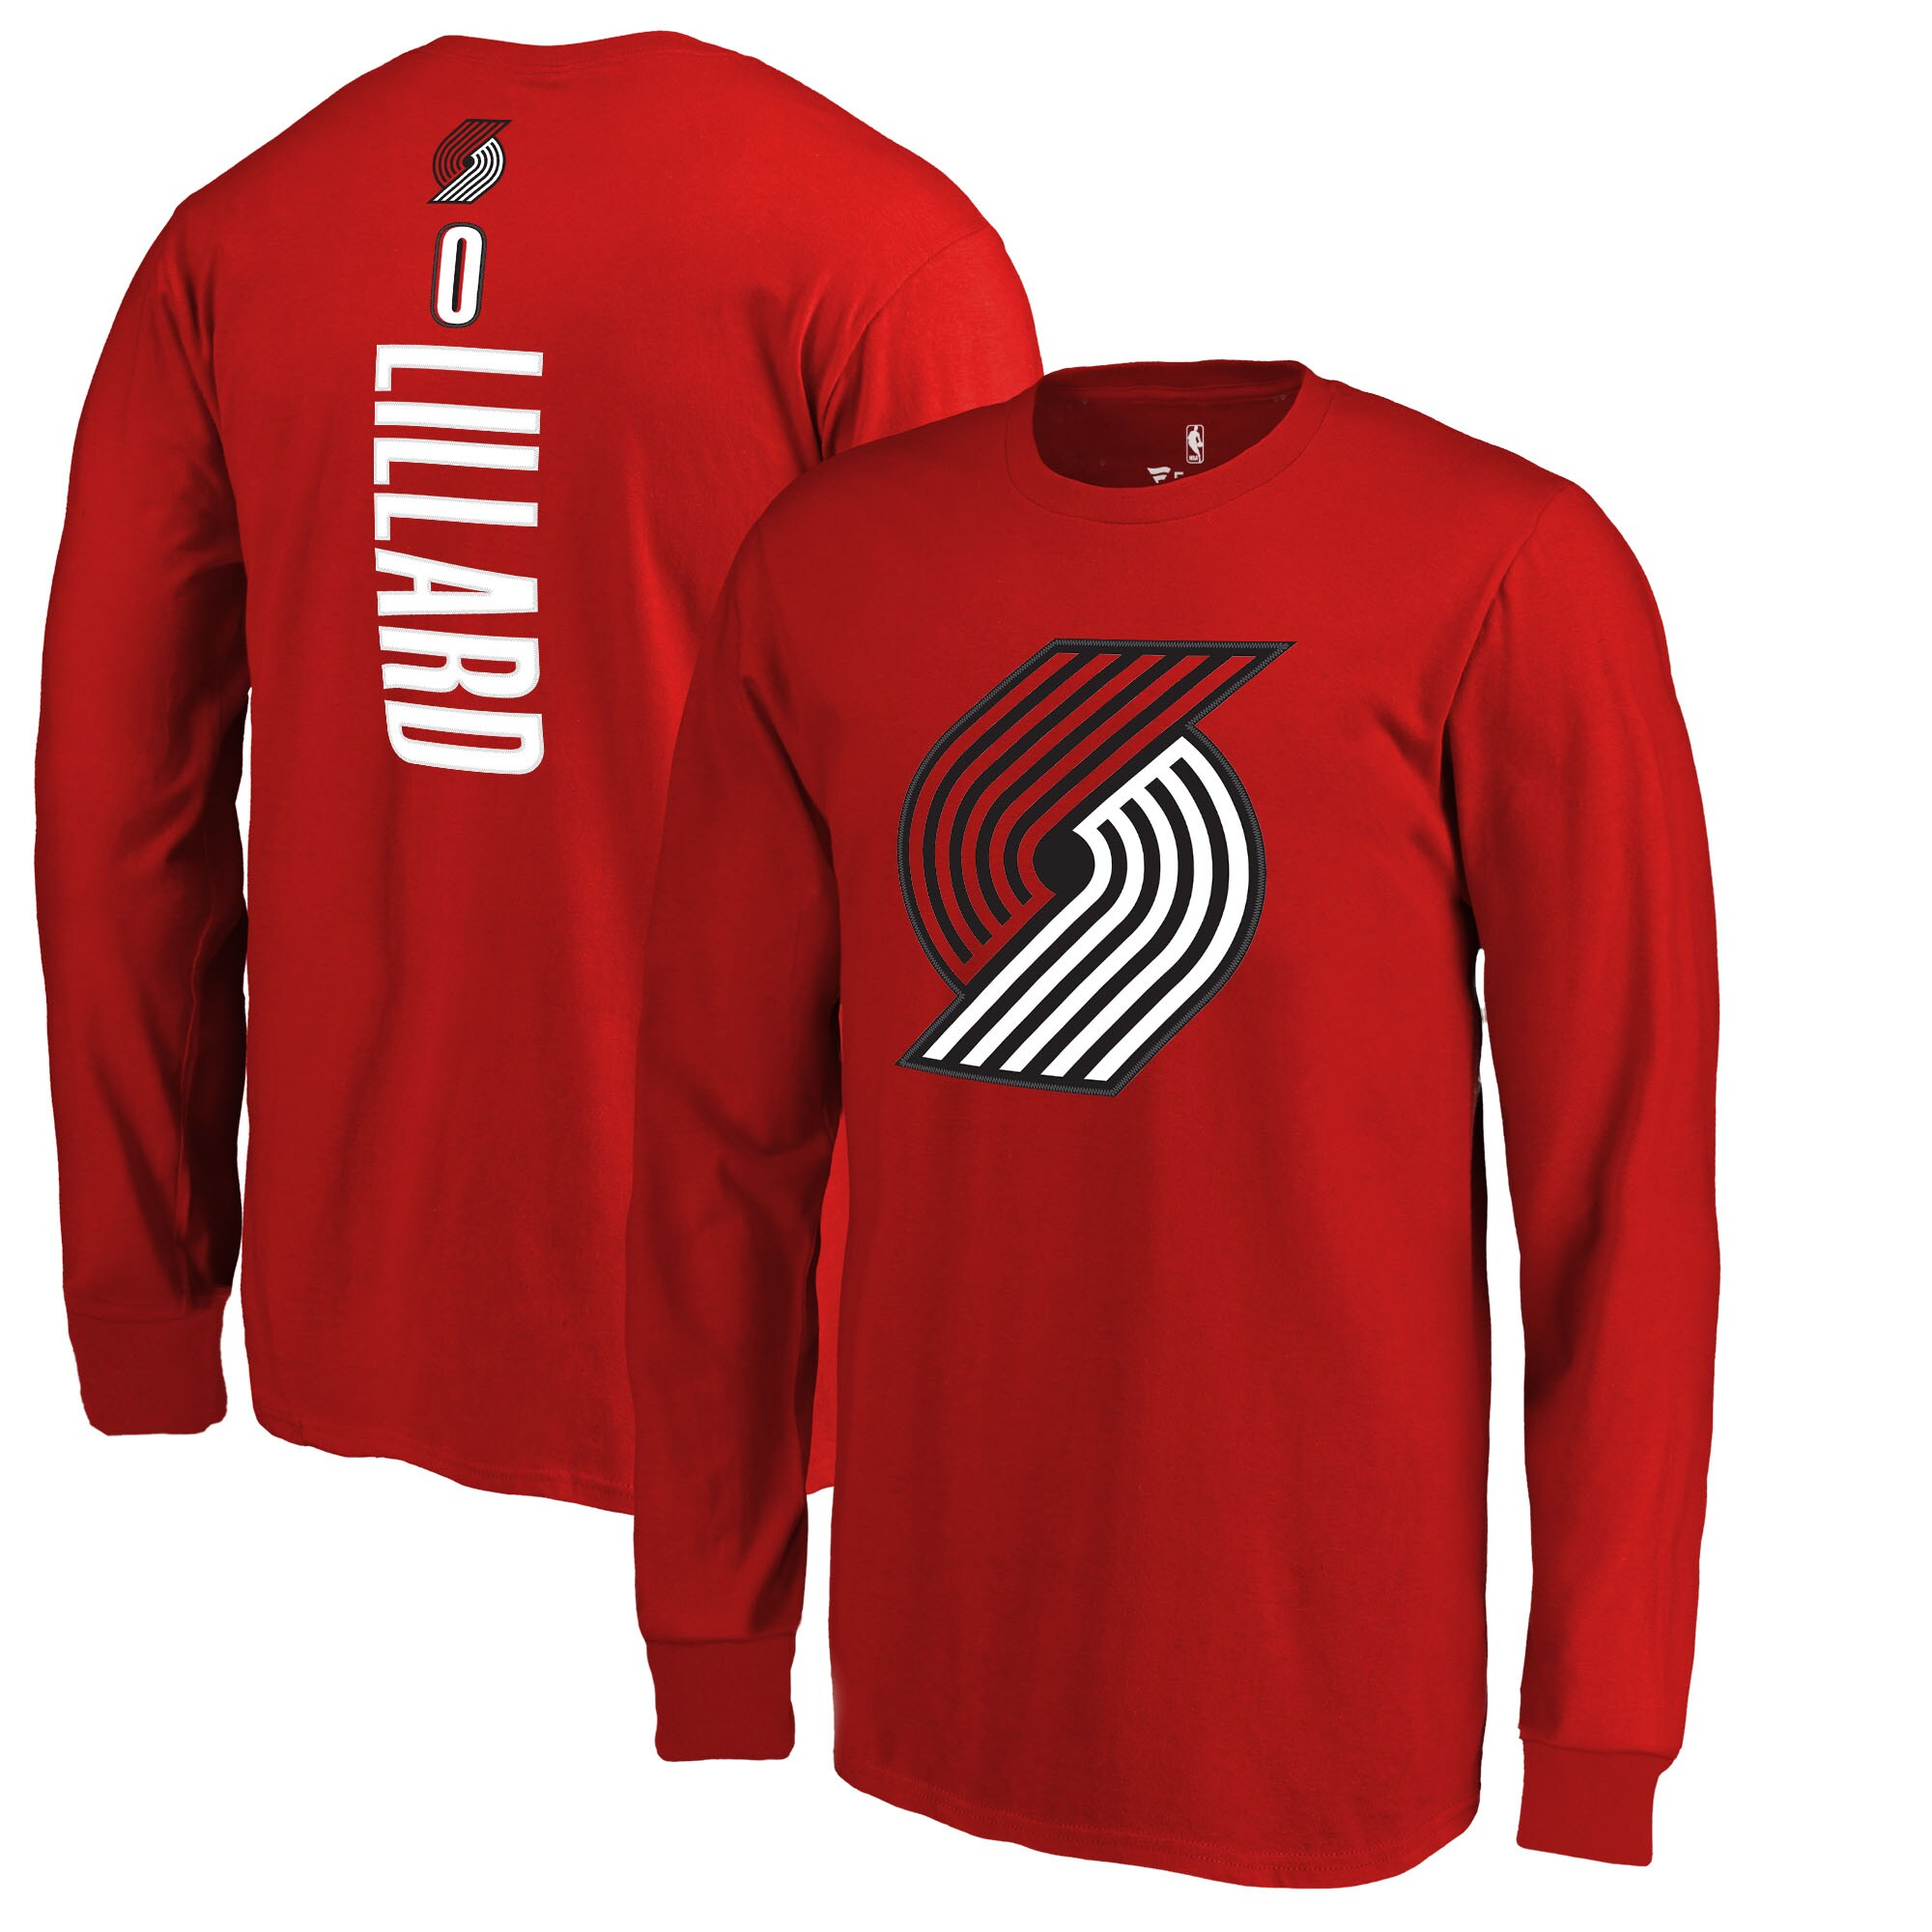 Damian Lillard Portland Trail Blazers Fanatics Branded Youth Team Backer Name & Number Long Sleeve T-Shirt - Red